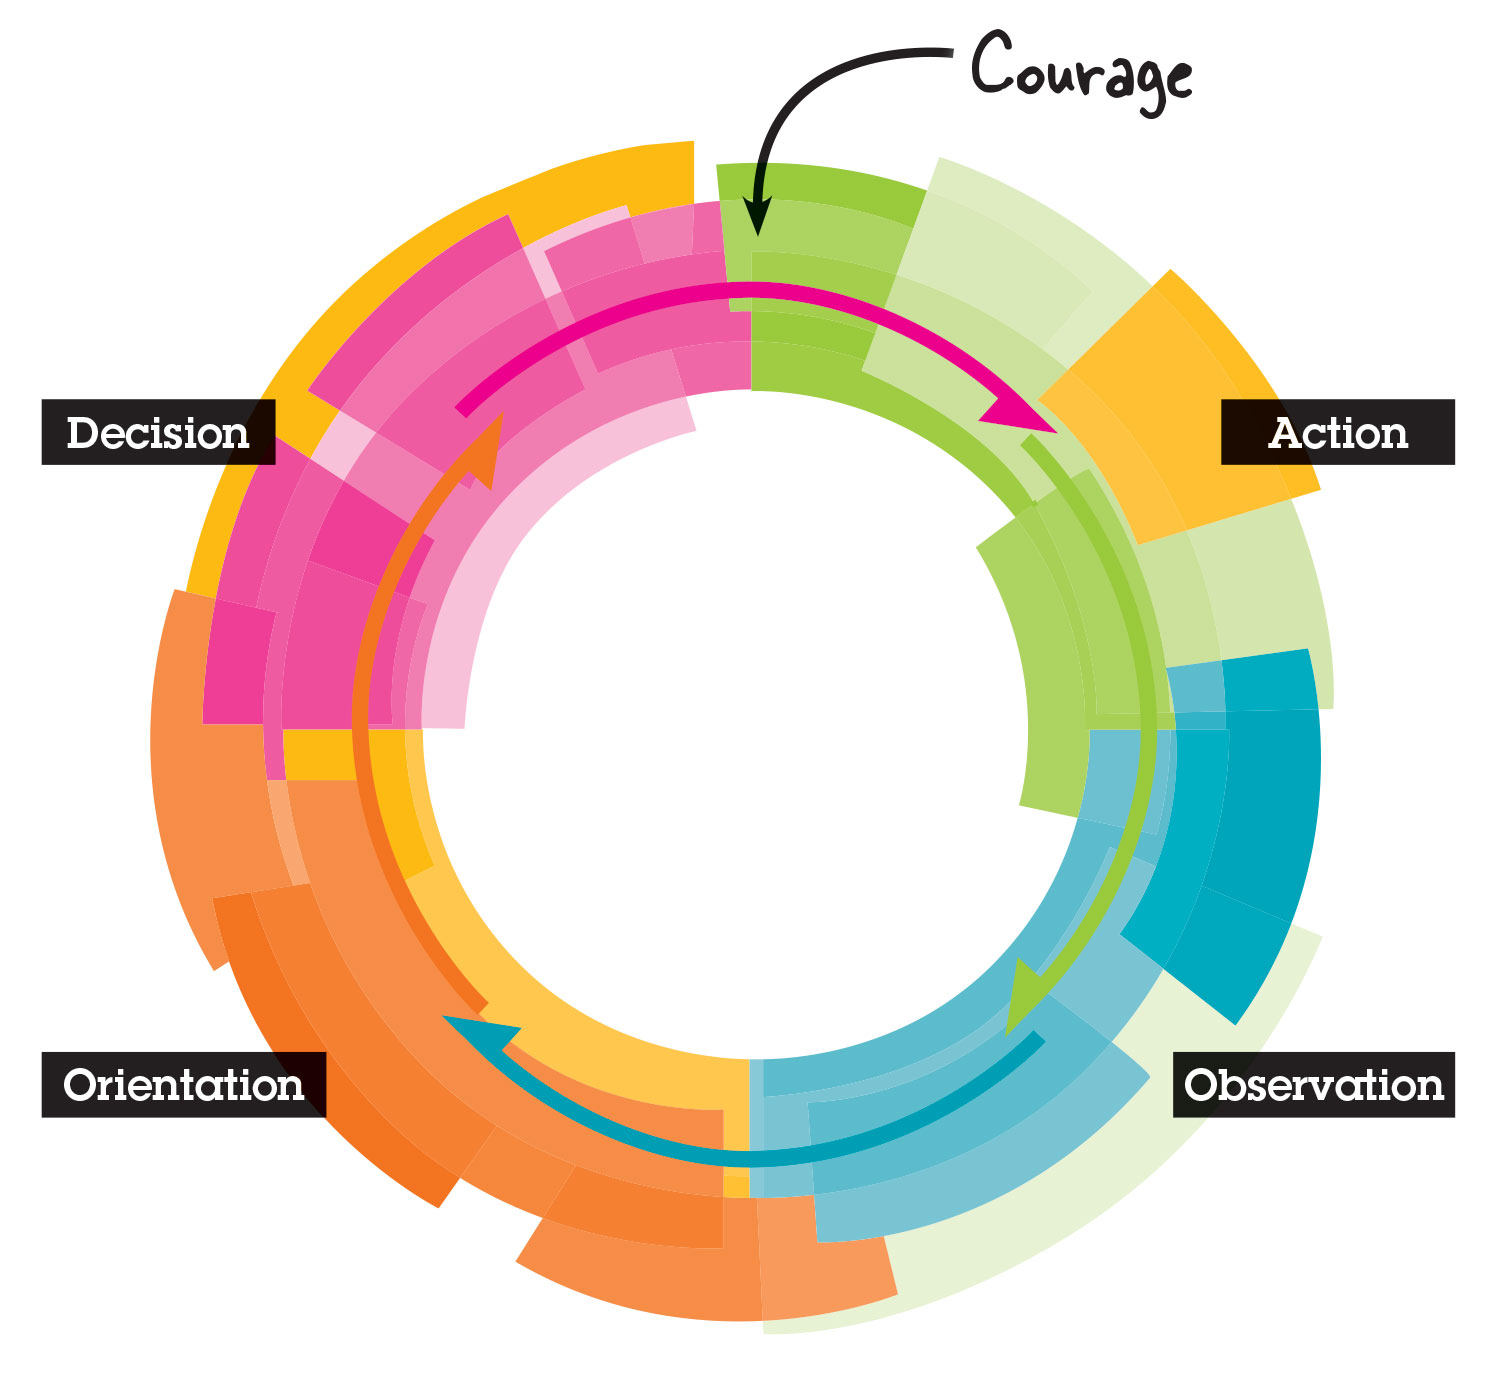 TARGIT_ELEMENT_Circle_Courage_CMYK